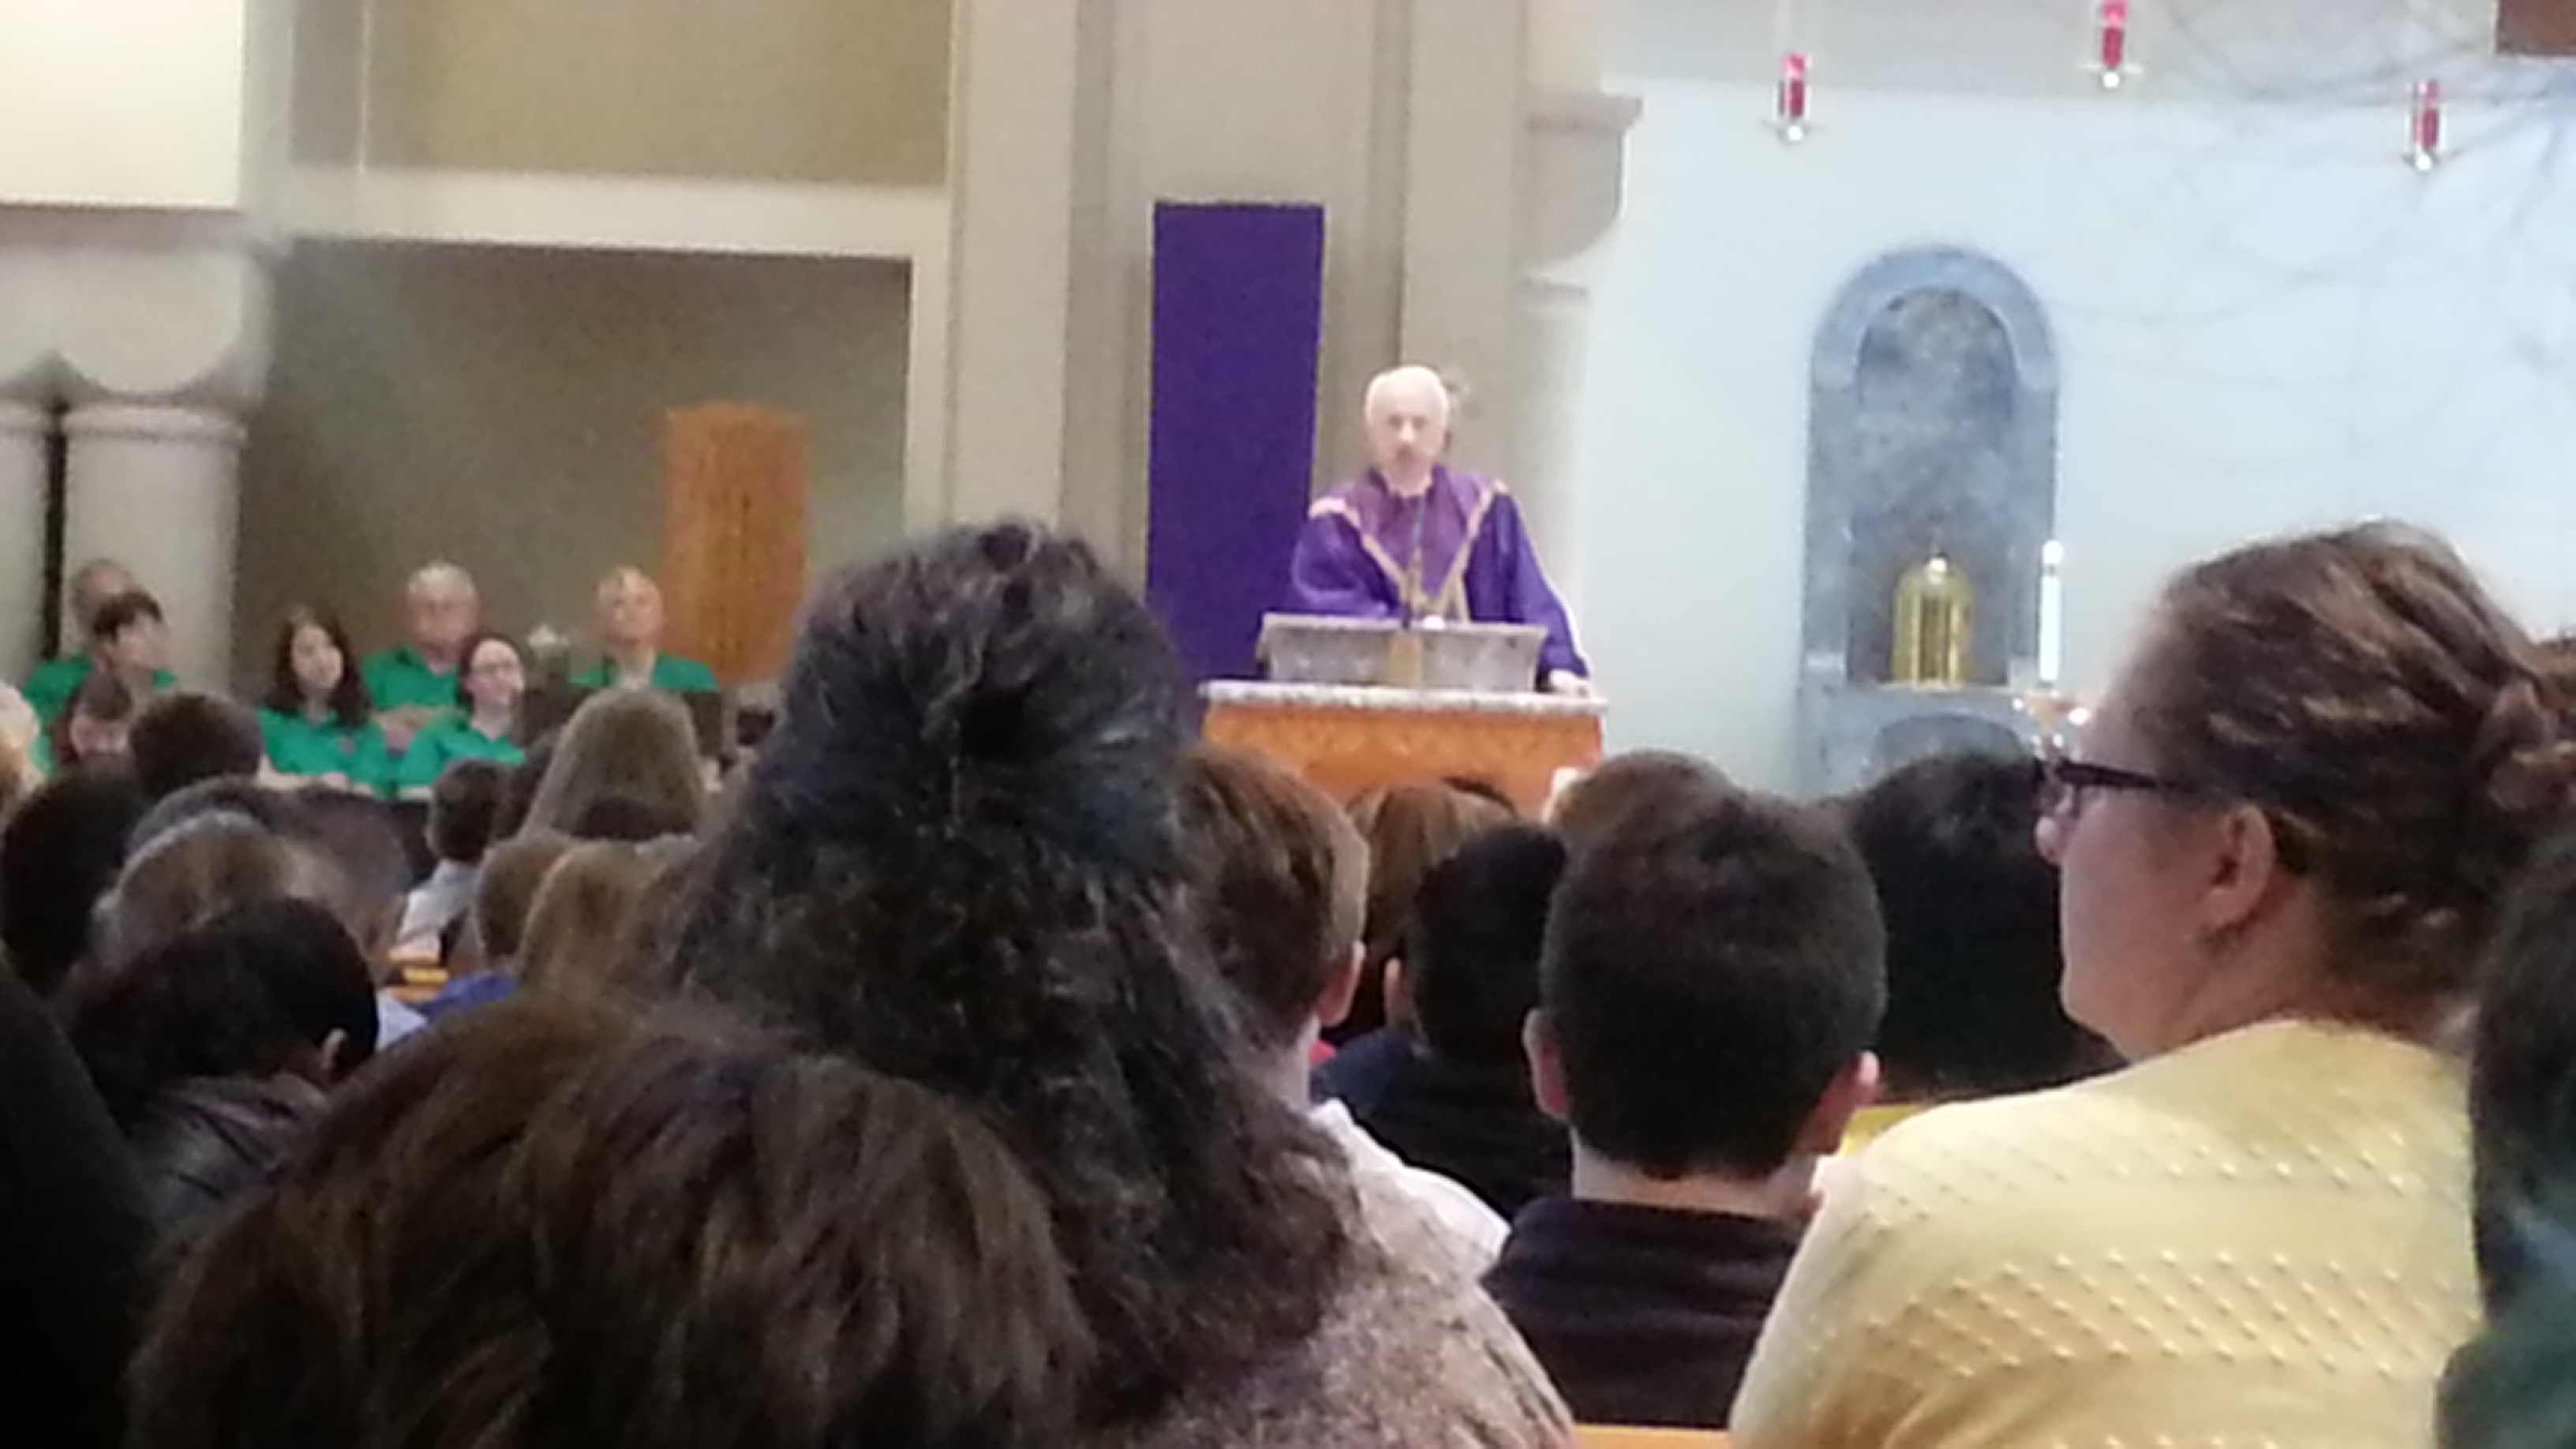 Bishop Bransfield's homily